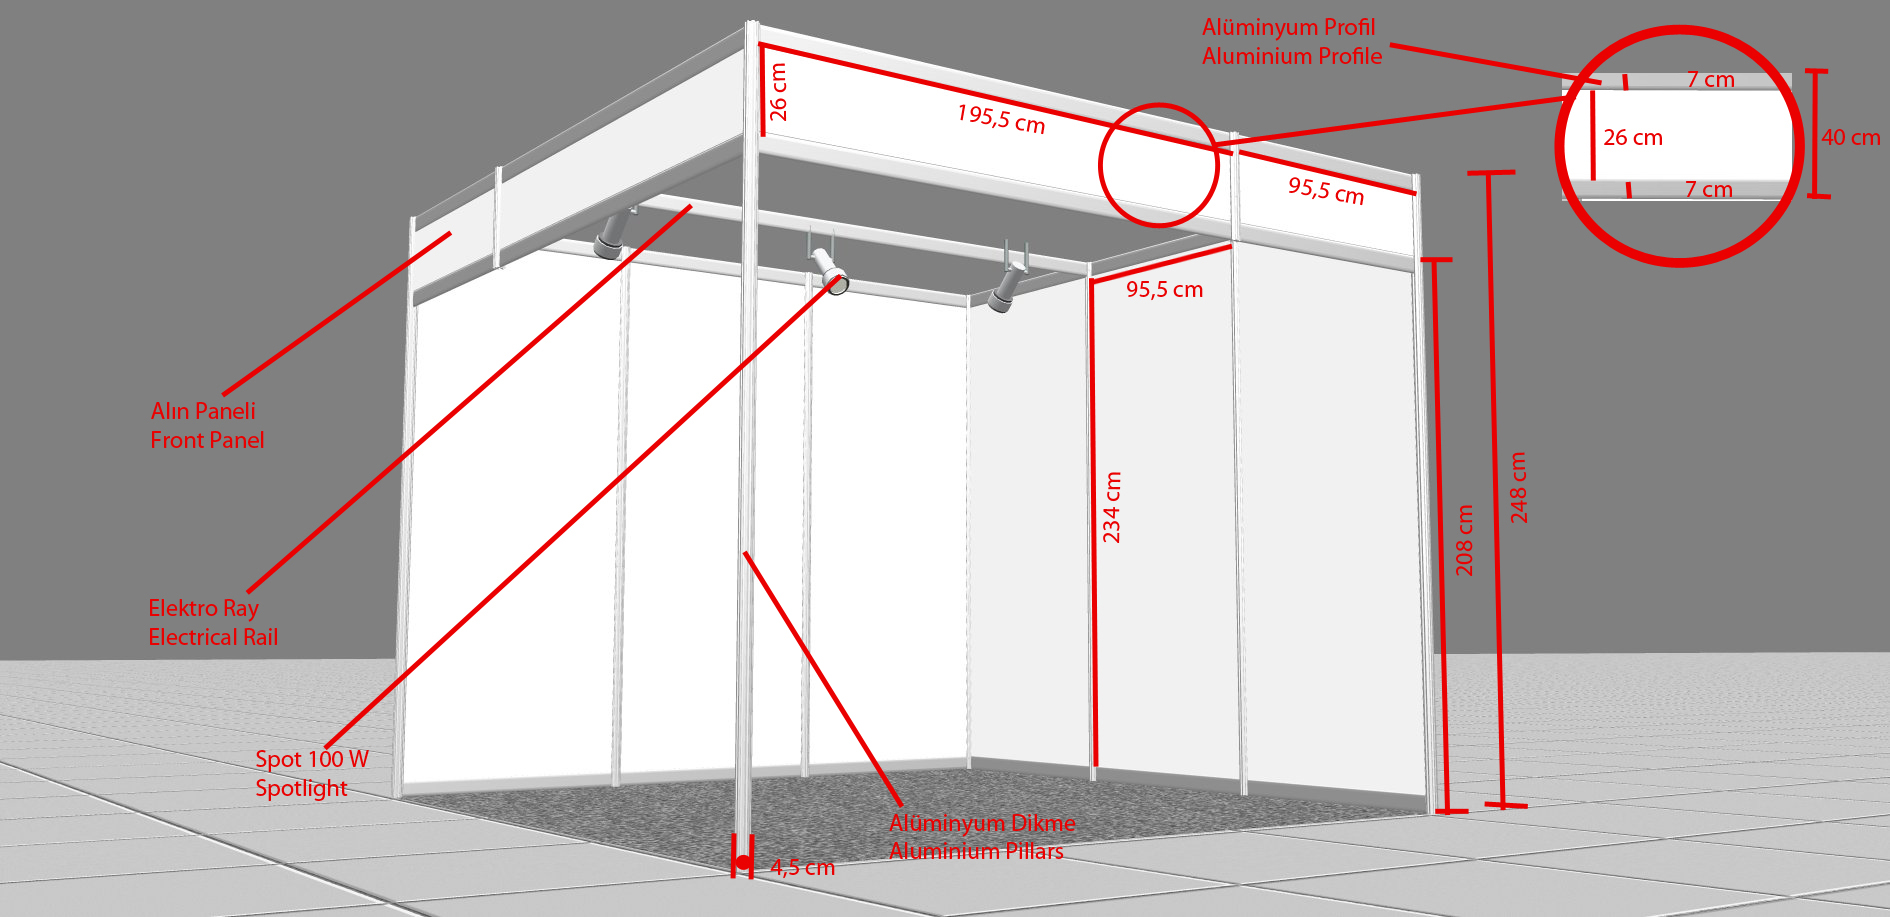 Exhibition Stand Measurements : Rules regulations